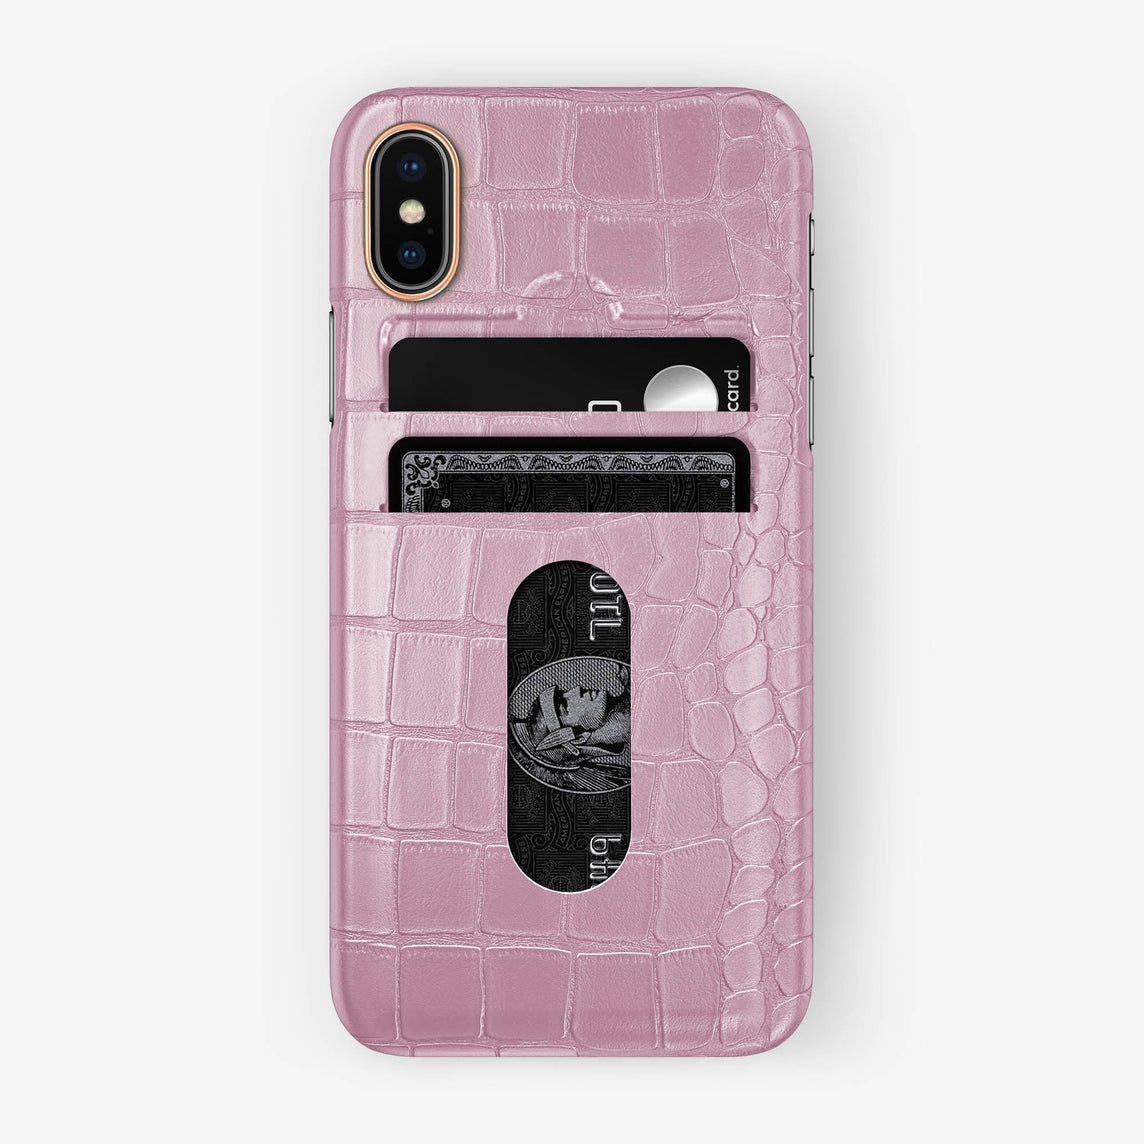 Alligator Card Holder Case iPhone Xs | Pink - Rose Gold with-personalization